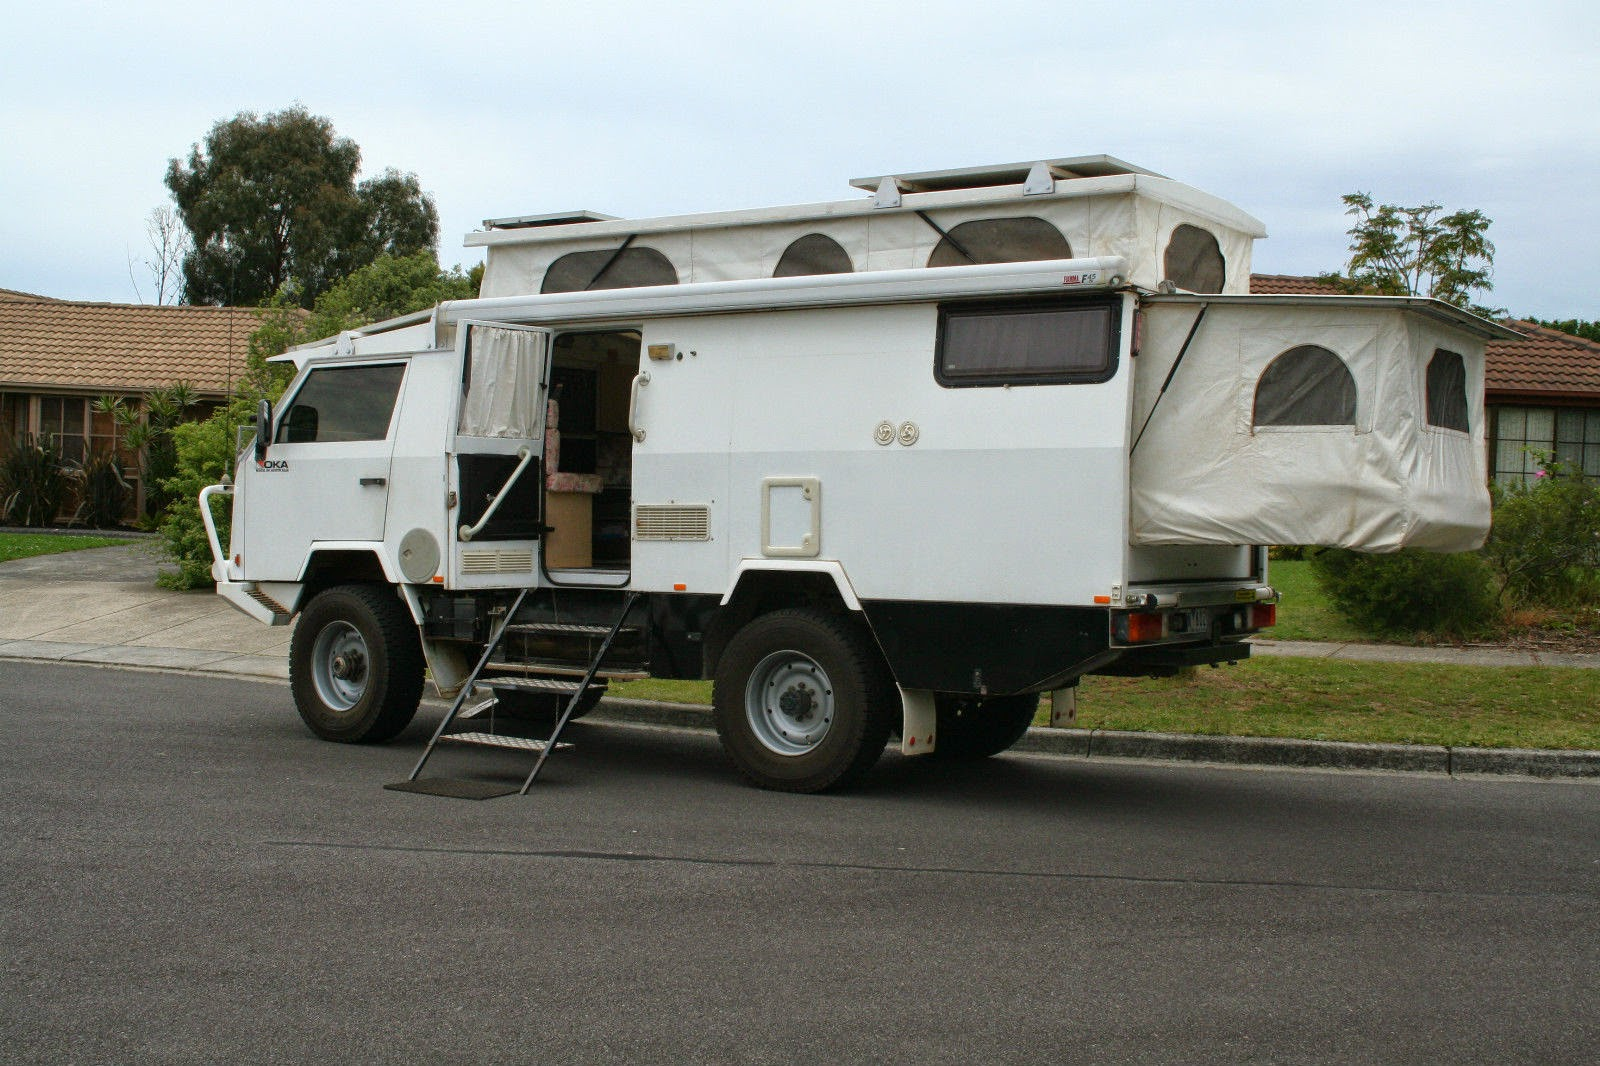 Original SLR SLRV Off Road Caravans And 4x4 Expedition Vehicles 4x4 Motorhomes